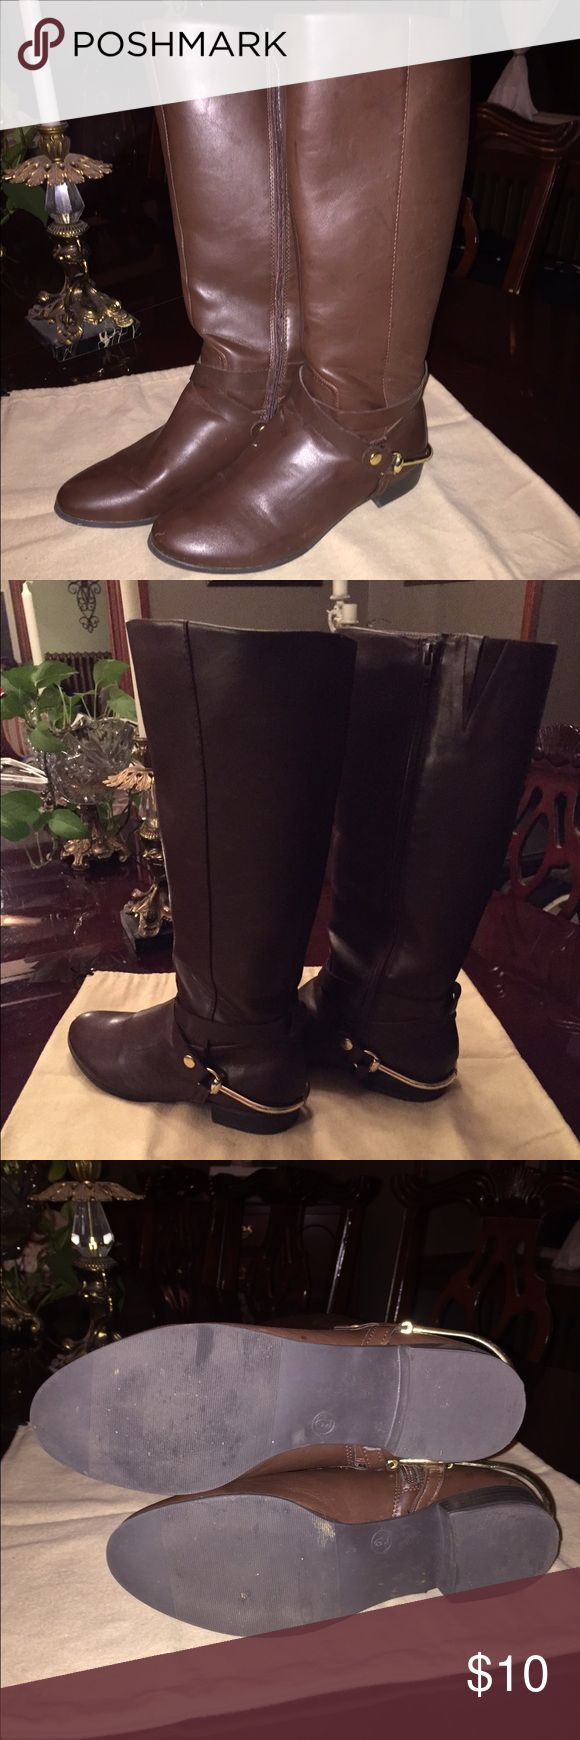 Brown faux leather riding boots Cute zip up faux leather riding boots. Gold tone detail. Elastic slit to accommodate wider calf. Merona Shoes